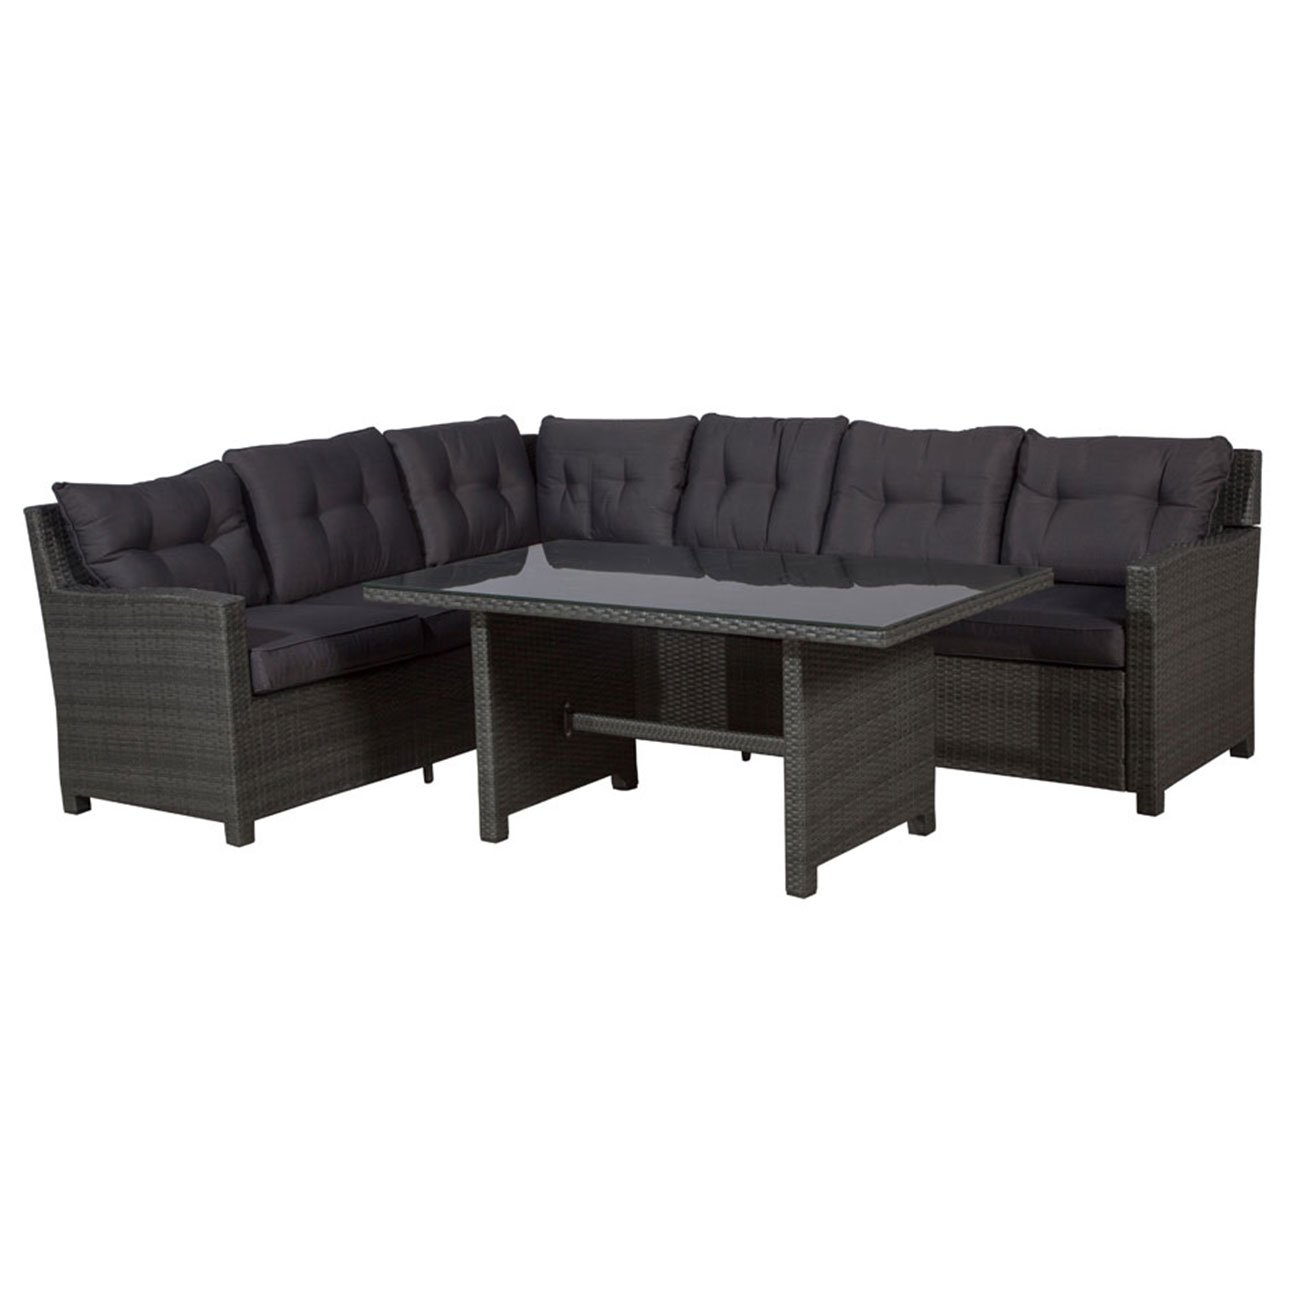 Rattan gartenm bel dining lounge set outliv aboyne for Lounge set rattan gunstig